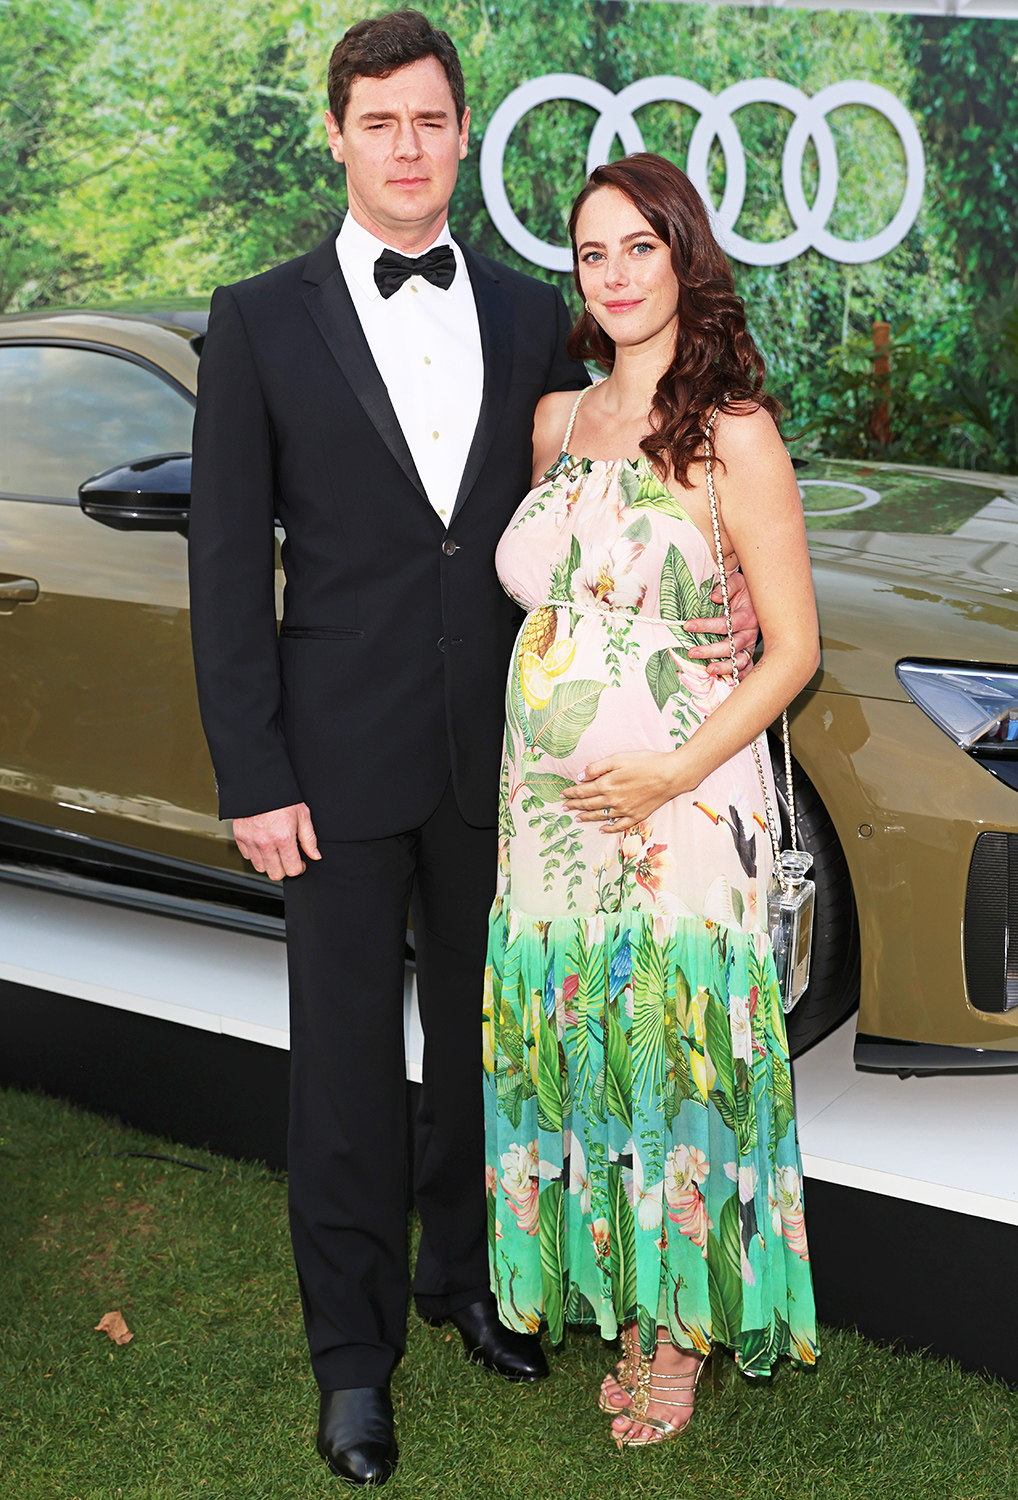 Benjamin Walker and Kaya Scodelario attend the Henley Festival 2021 as guests of Audi on September 17, 2021 in Henley-on-Thames, England.